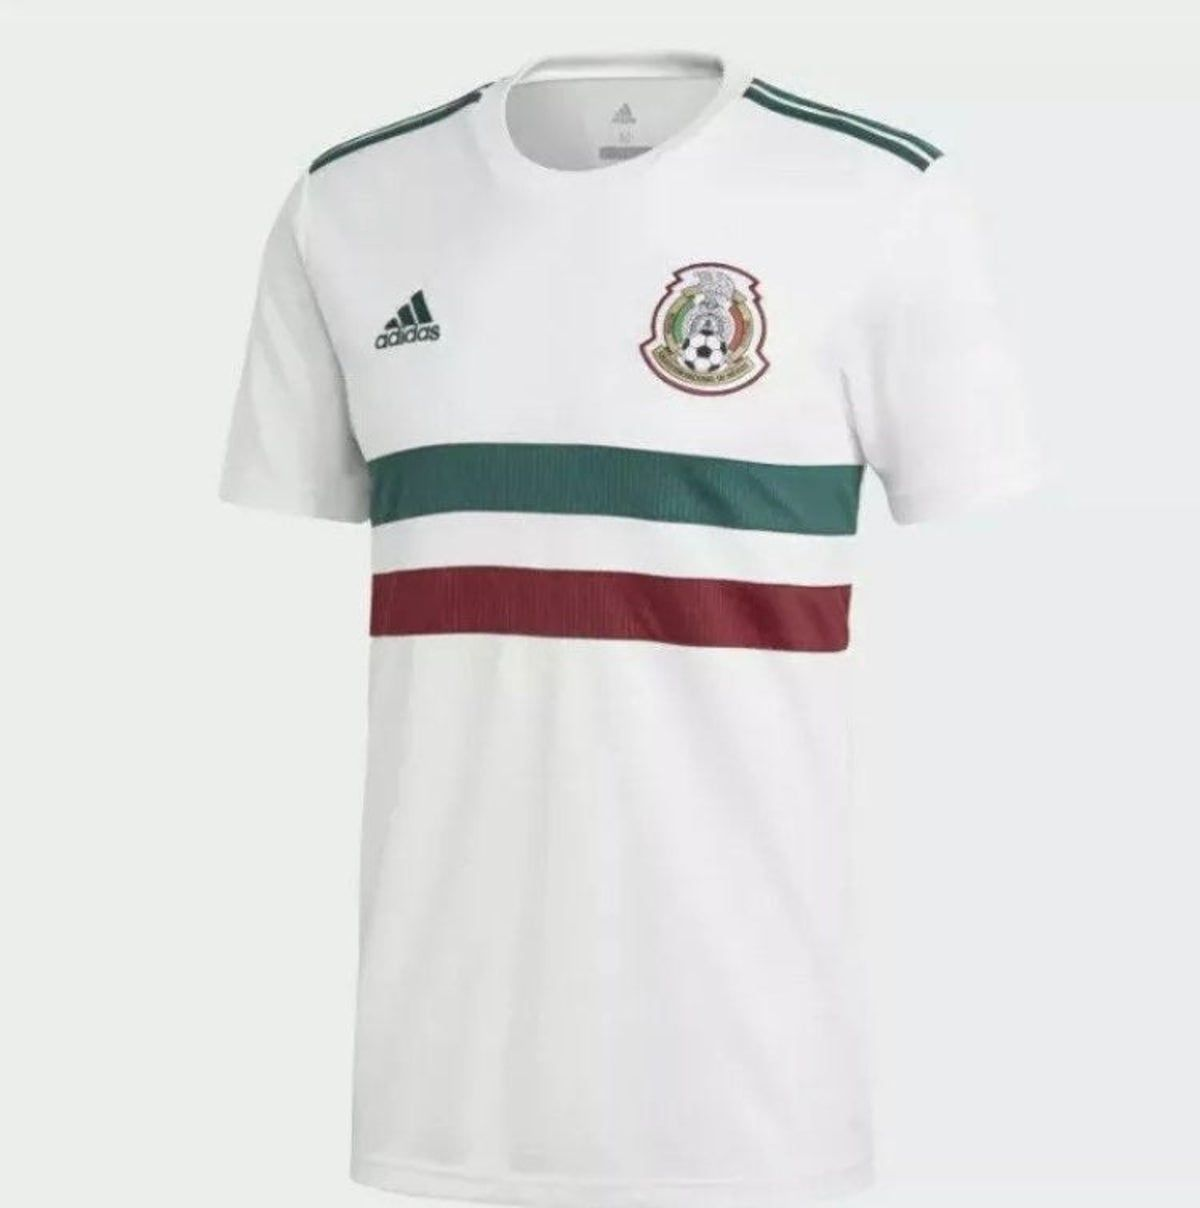 Adidas Mexico Soccer White Jersey Drifit In 2020 Mexico Away Jersey Mexico Soccer Jersey Mexico National Team